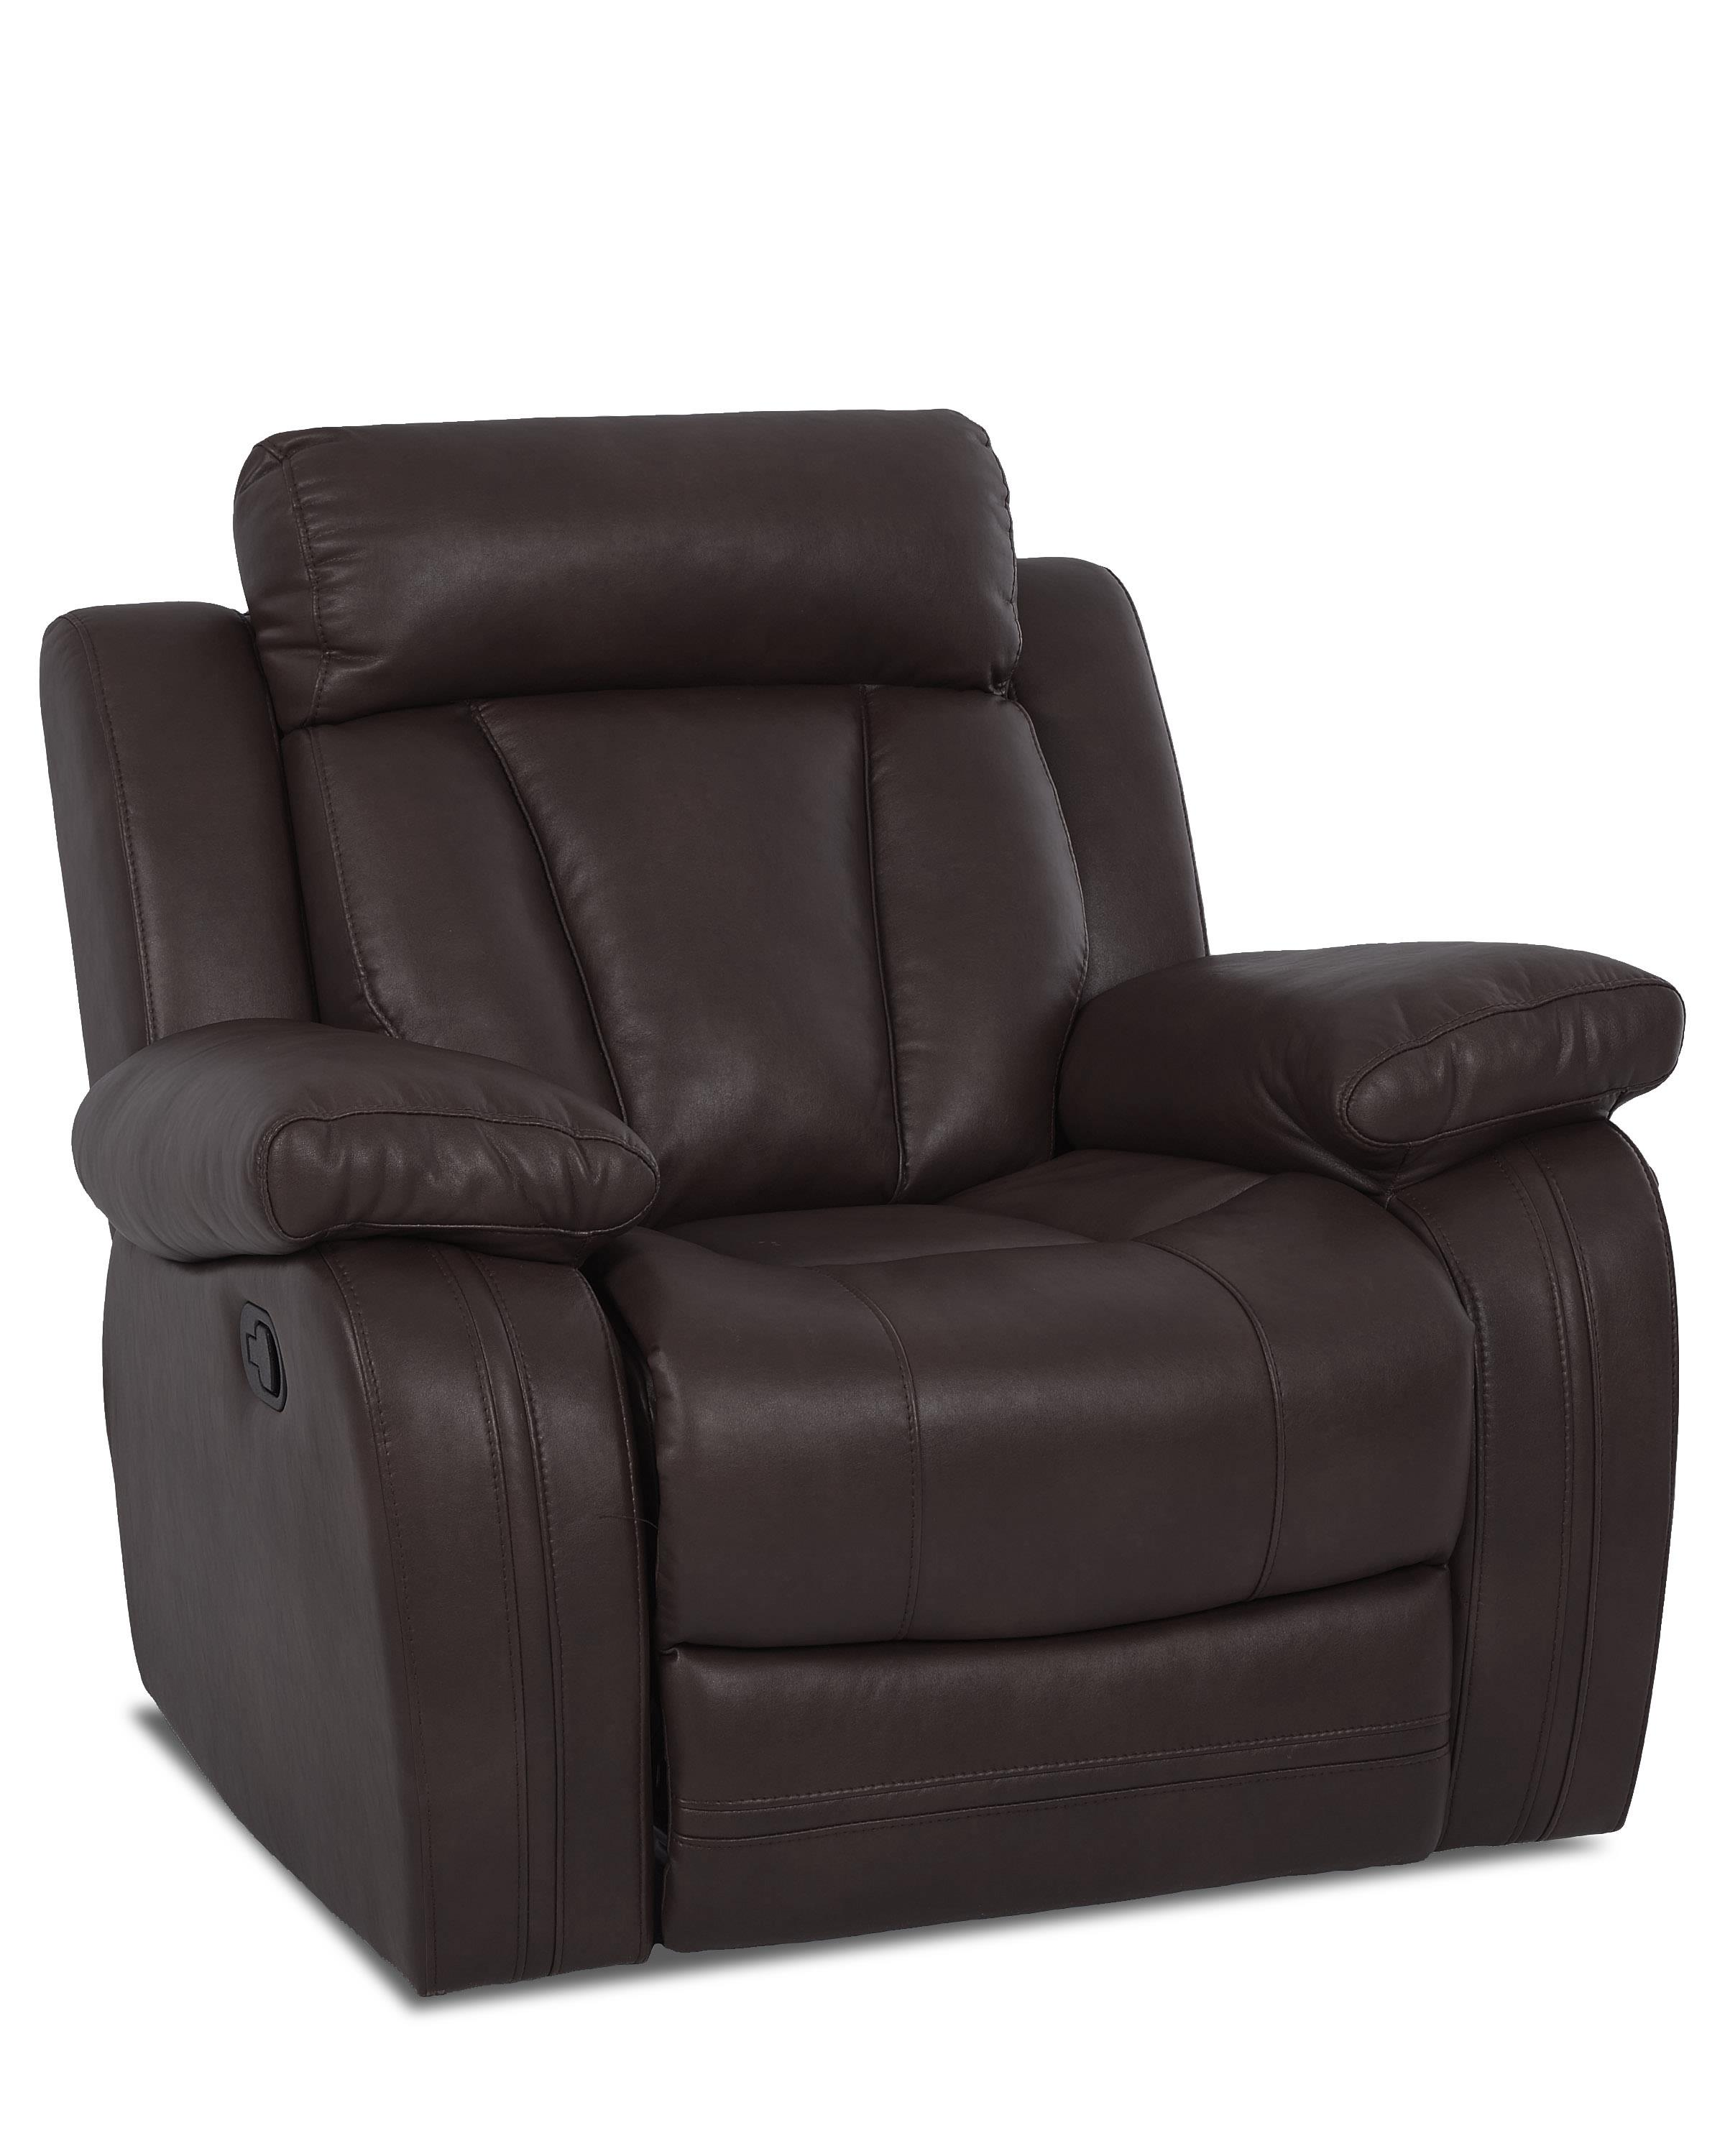 Atticus-US Power Reclining Chair by Klaussner International at Lagniappe Home Store